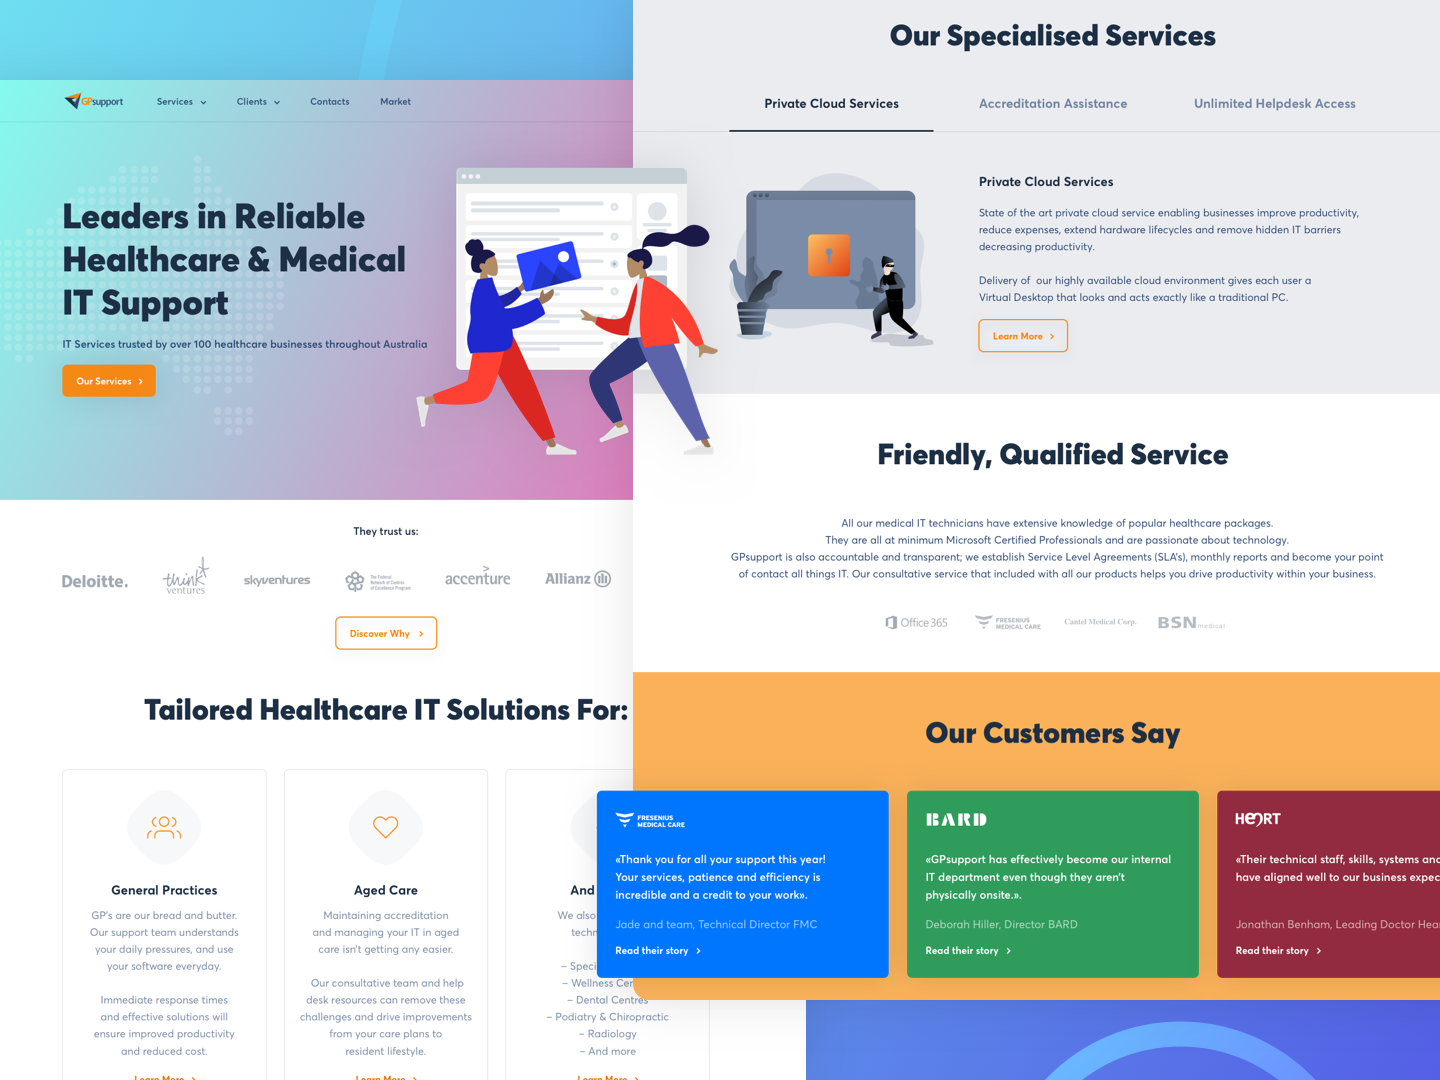 «GPsupport». Leaders in reliable healthcare & medical it support interface sketchapp thedesigntip uxigers support leaders it australia services heart health medical dailyinspiration uitrends graphicdesign design uxdesign uidesign inspiration web